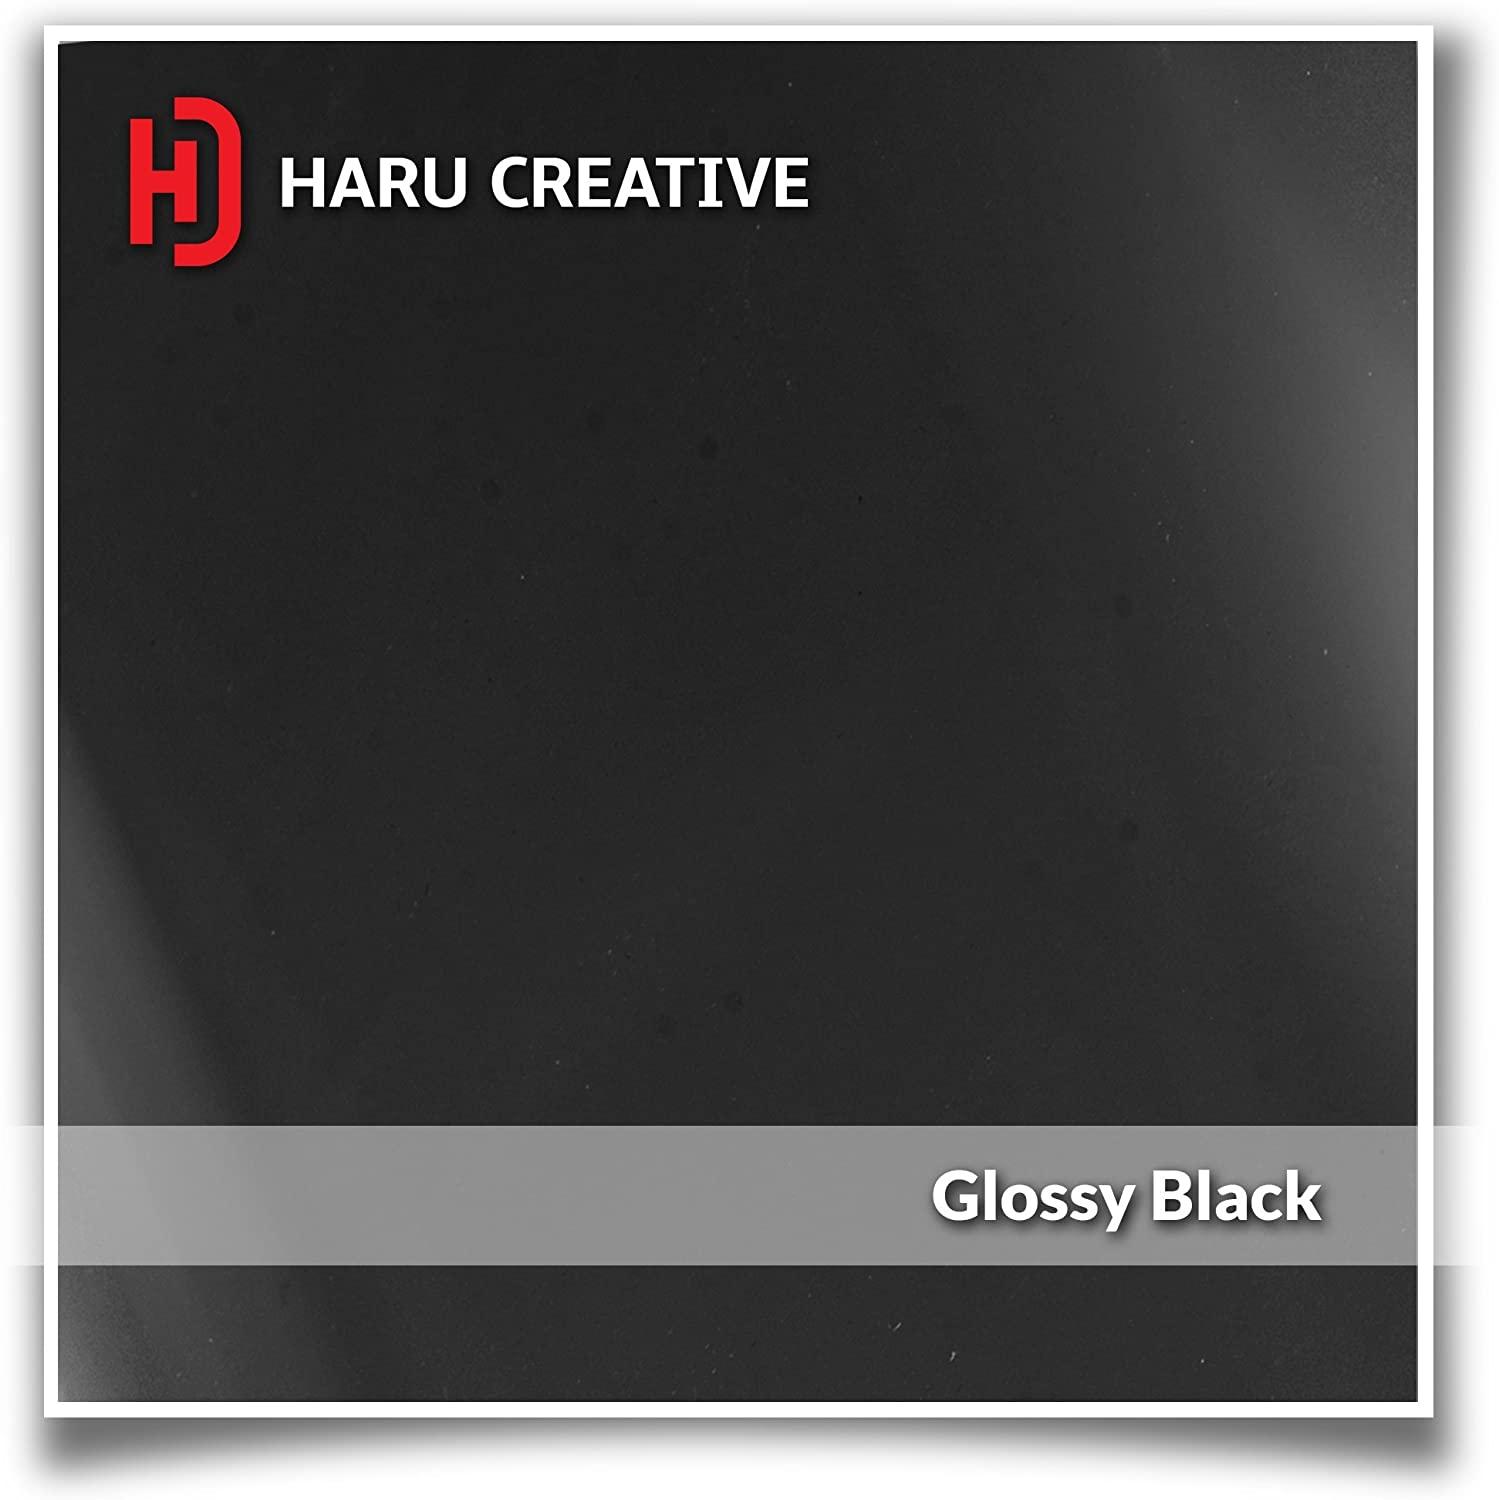 Haru Creative Gloss Black Dashboard Glove Box Letter Insert Overlay Vinyl Decal Compatible with and Fits 2017 2018 Ford Super Duty F250 F350 F450